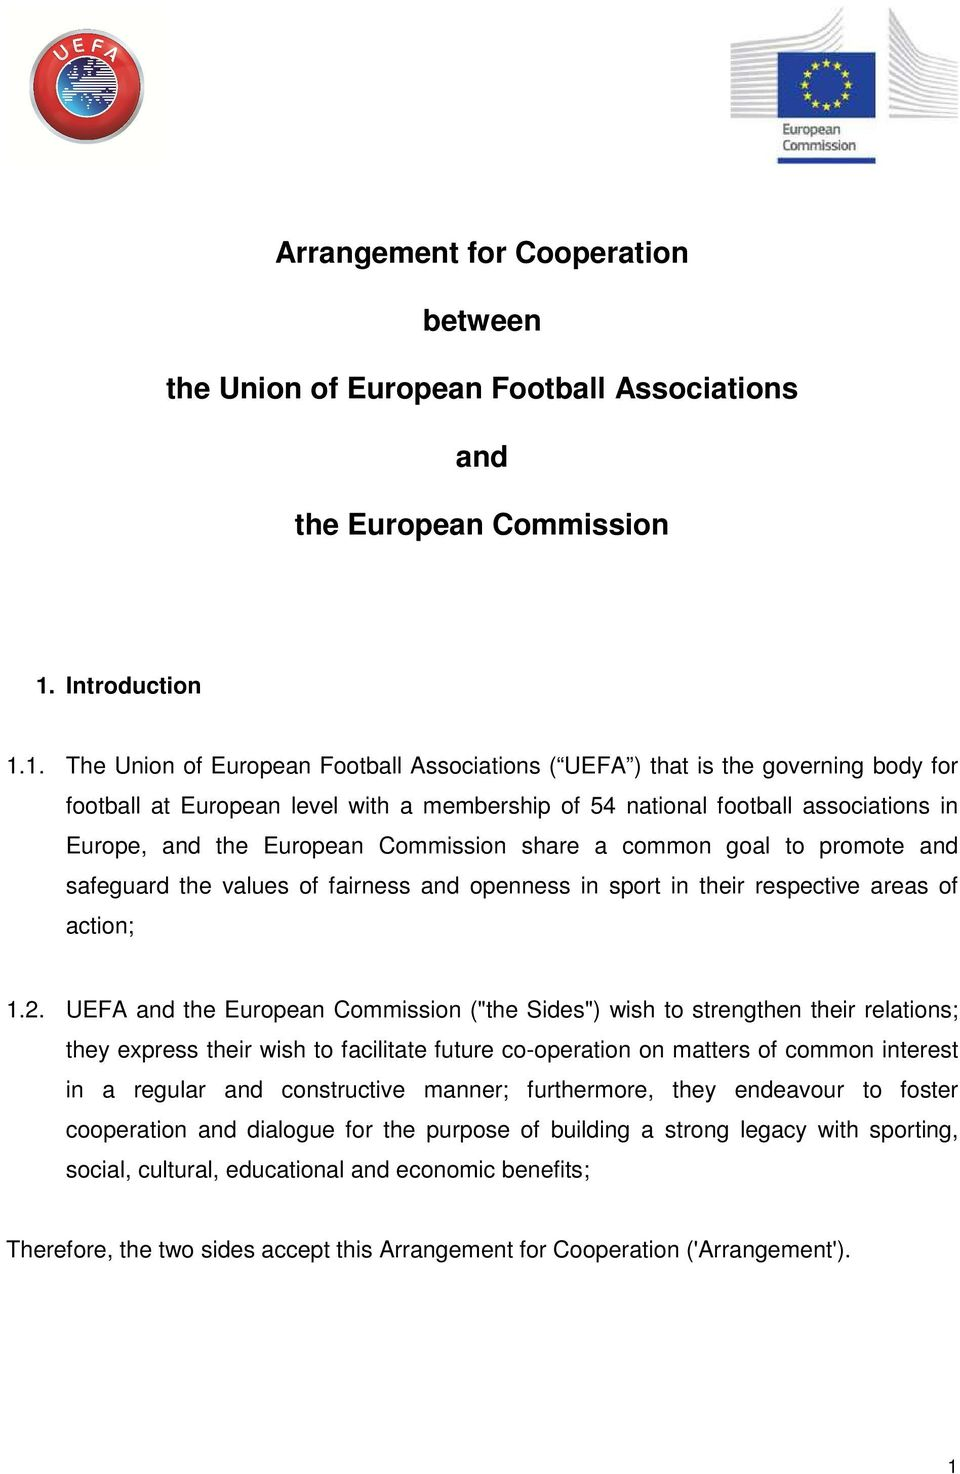 1. The Union of European Football Associations ( UEFA ) that is the governing body for football at European level with a membership of 54 national football associations in Europe, and the European